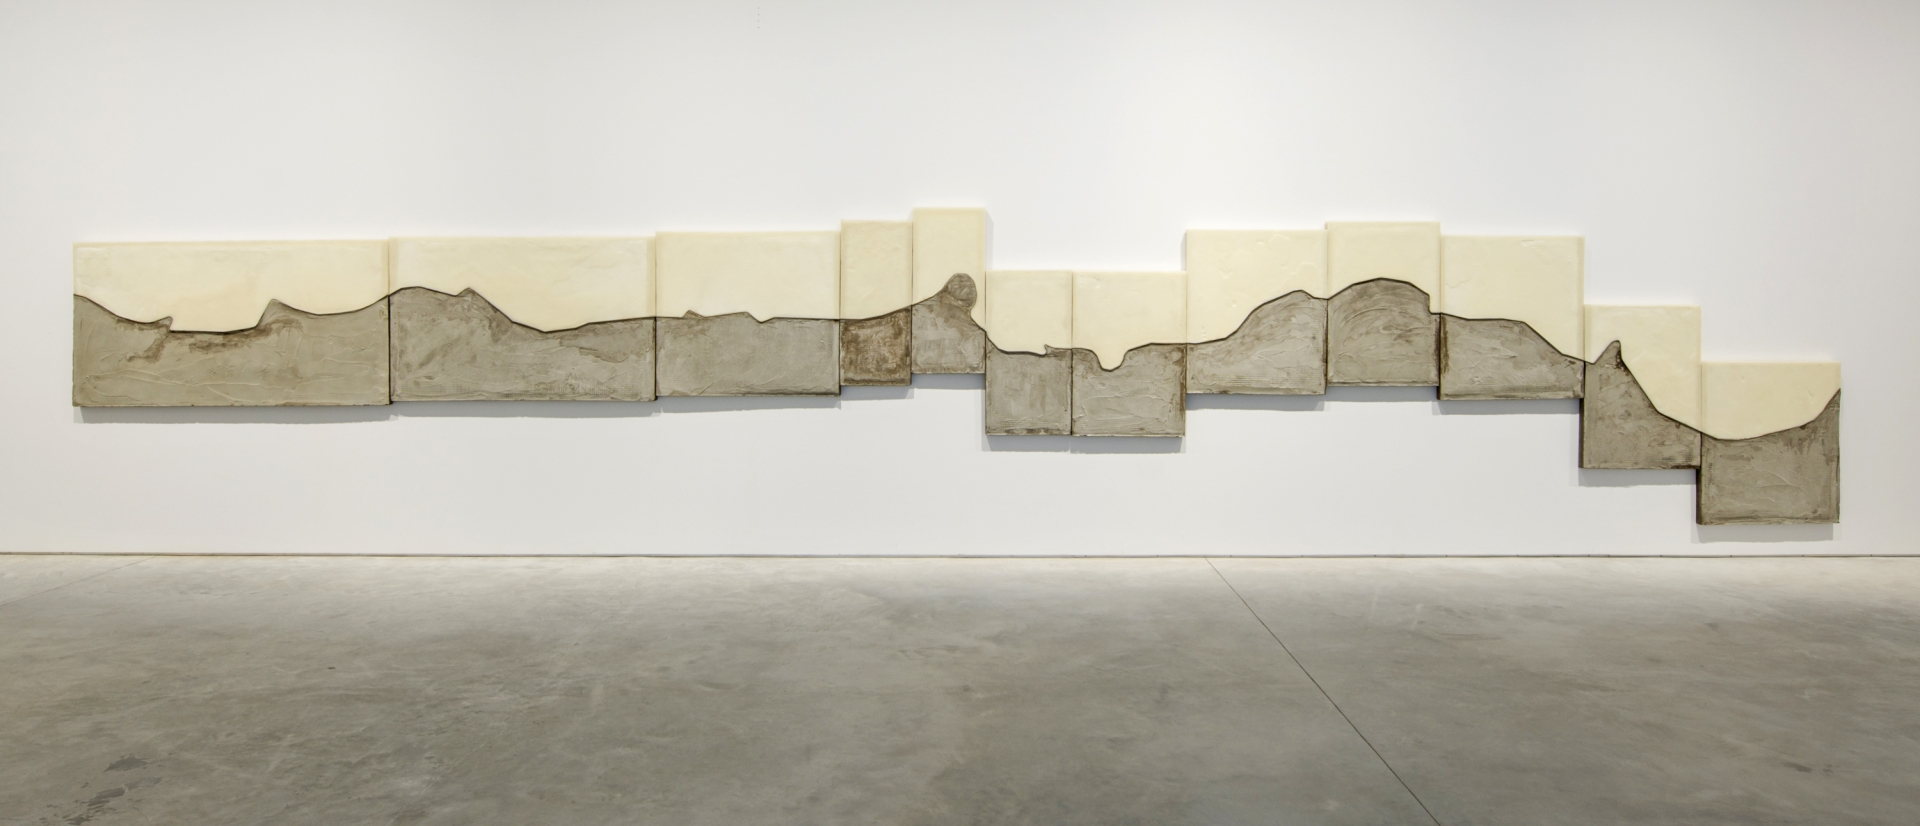 Marwan Rechmaoui, Untitled 12, 2017. Concrete, brass, beeswax, fibre mesh, Styrofoam on wood board, 200 x 1000 cm, Unique. Installation view, Sharjah Biennial 13, 2017. Commissioned by Sharjah Art Foundation. Image courtesy of Sharjah Art Foundation